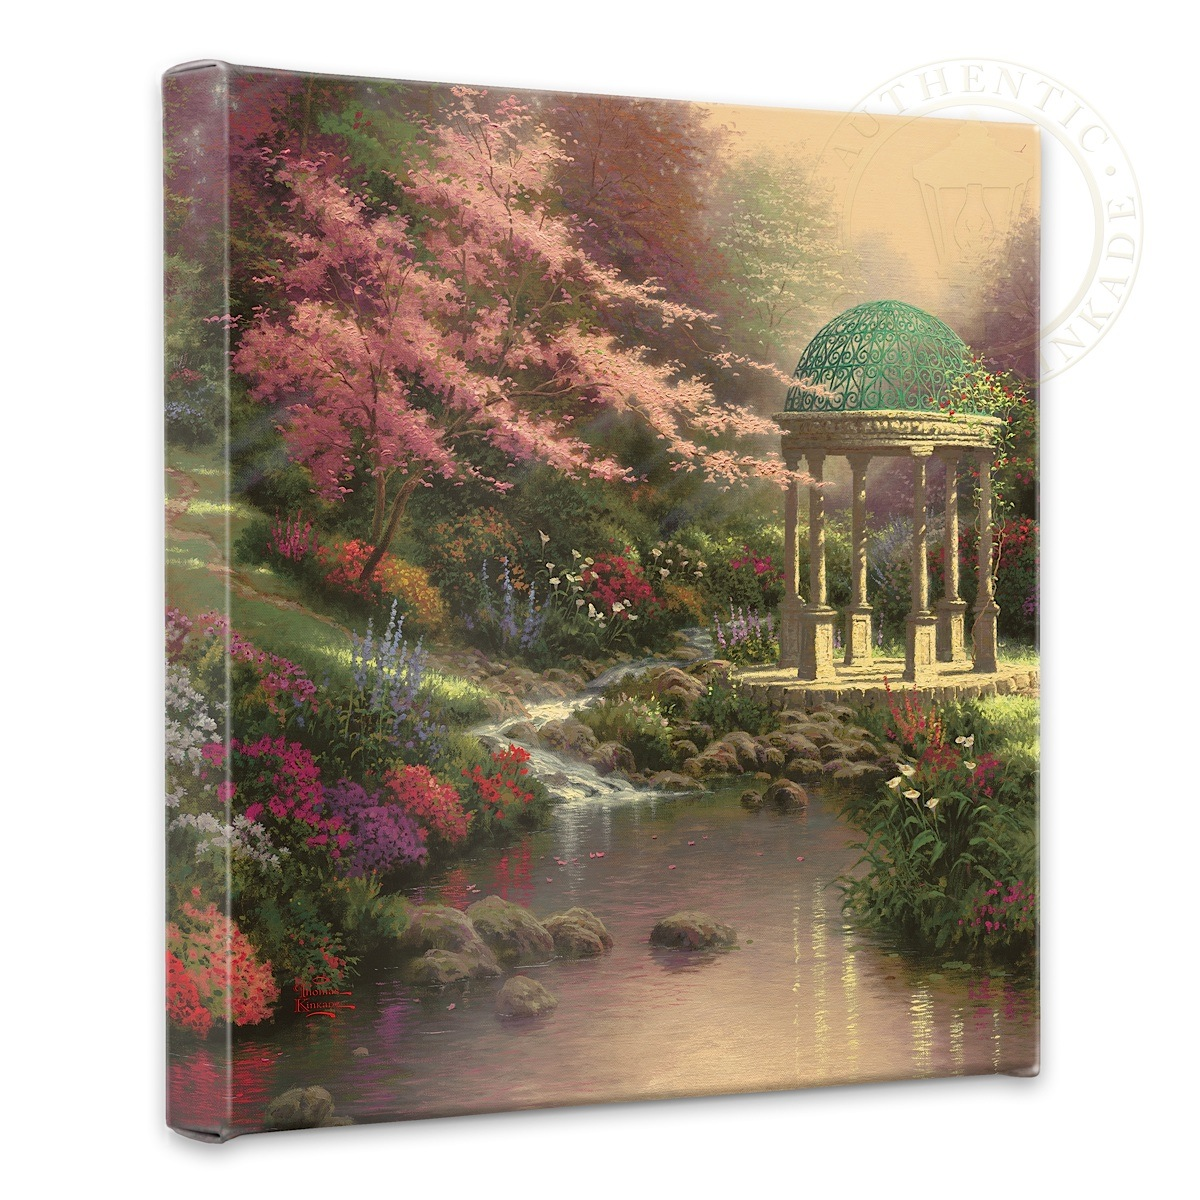 "Pools of Serenity - 14"" x 14"" Gallery Wrapped Canvas"